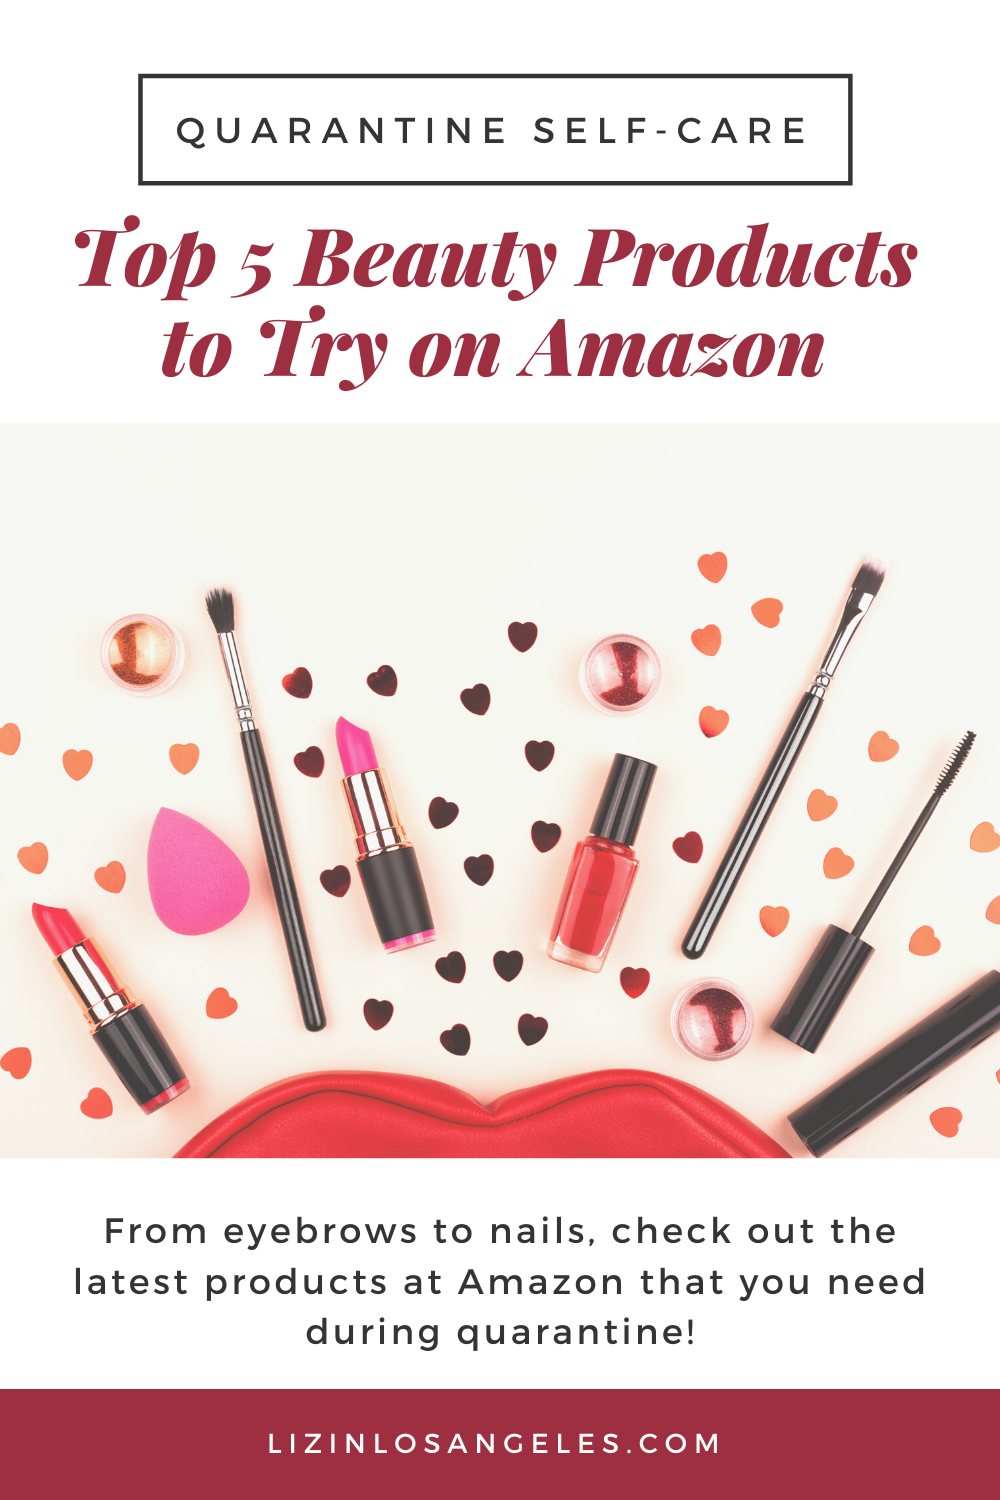 Top 5 Beauty Products to Try on Amazon, a blog post by Liz in Los Angeles, Los Angeles Lifestyle Blogger: an image of beauty products